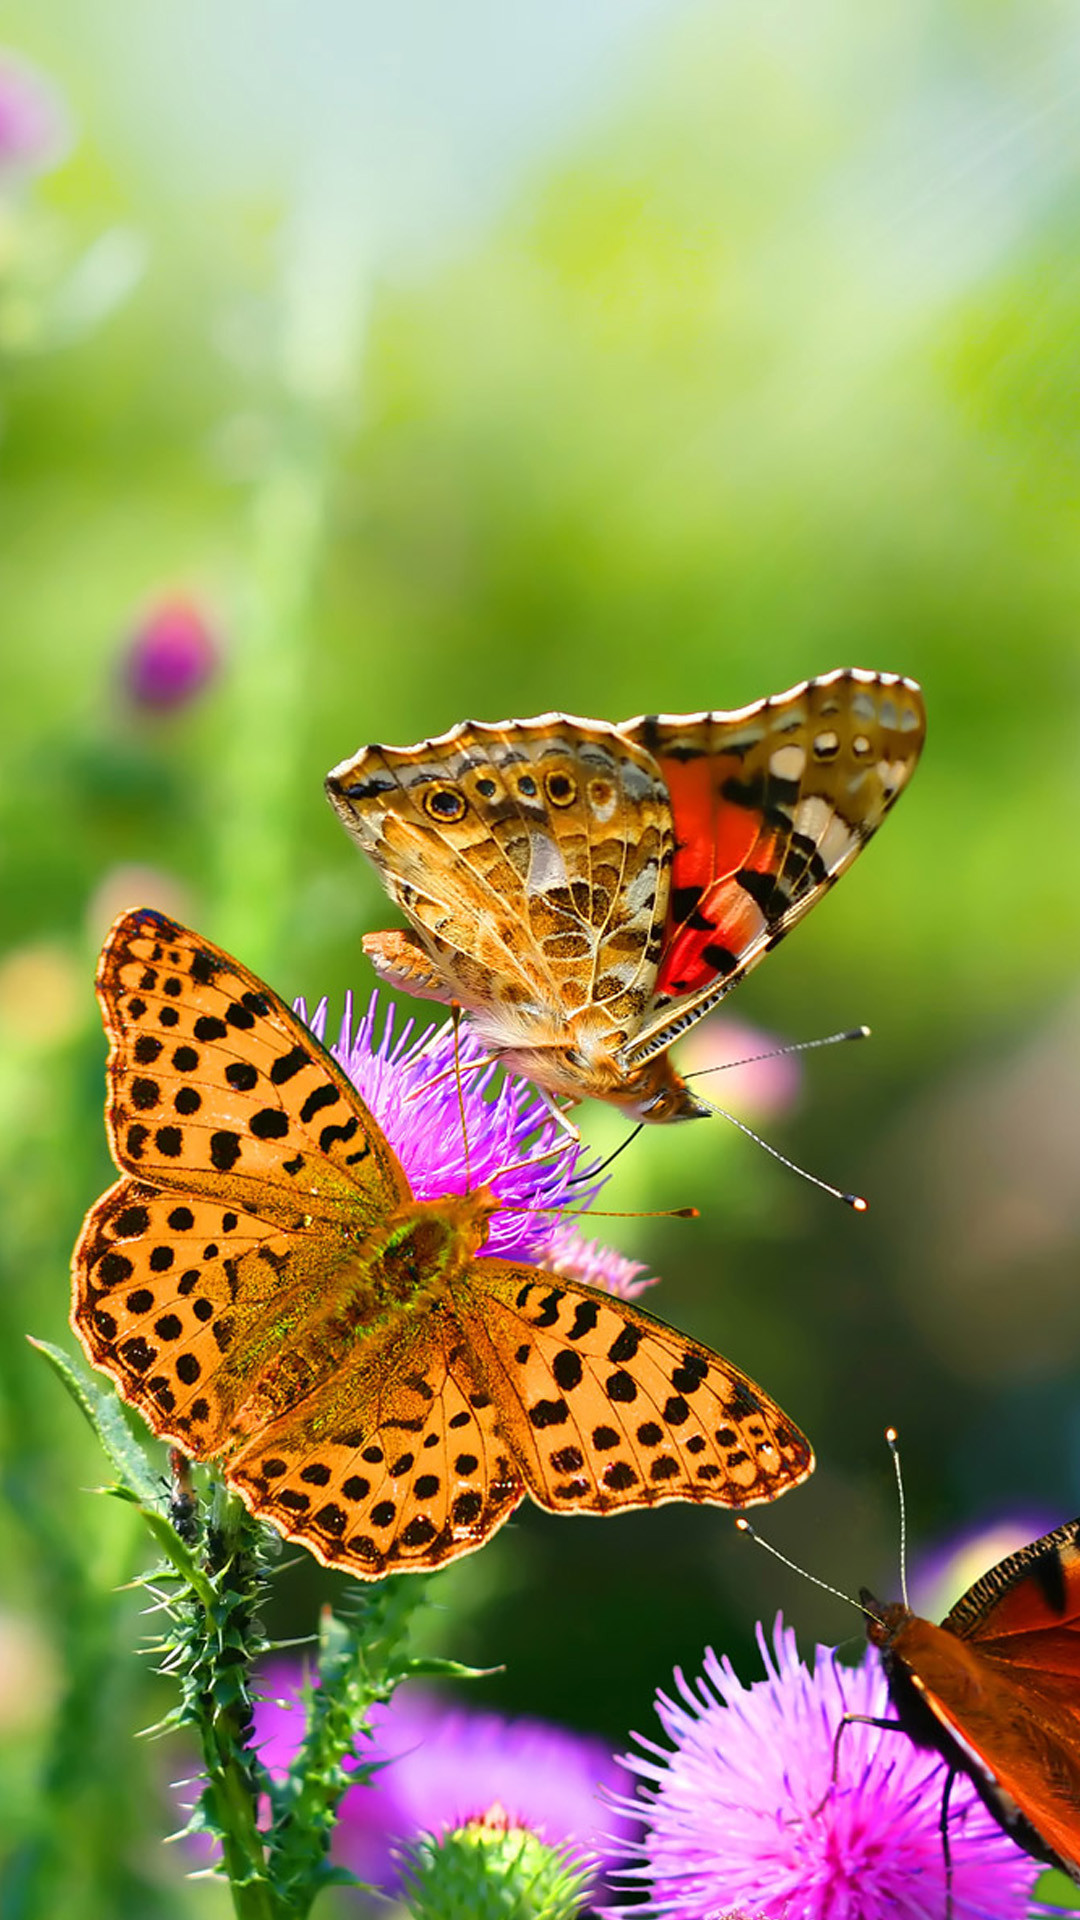 1080x1920 101 best Hd Walpaper (hd-wallpapersdownload.com) images on ... Tiger  Swallowtail Butterfly Wallpaper ...